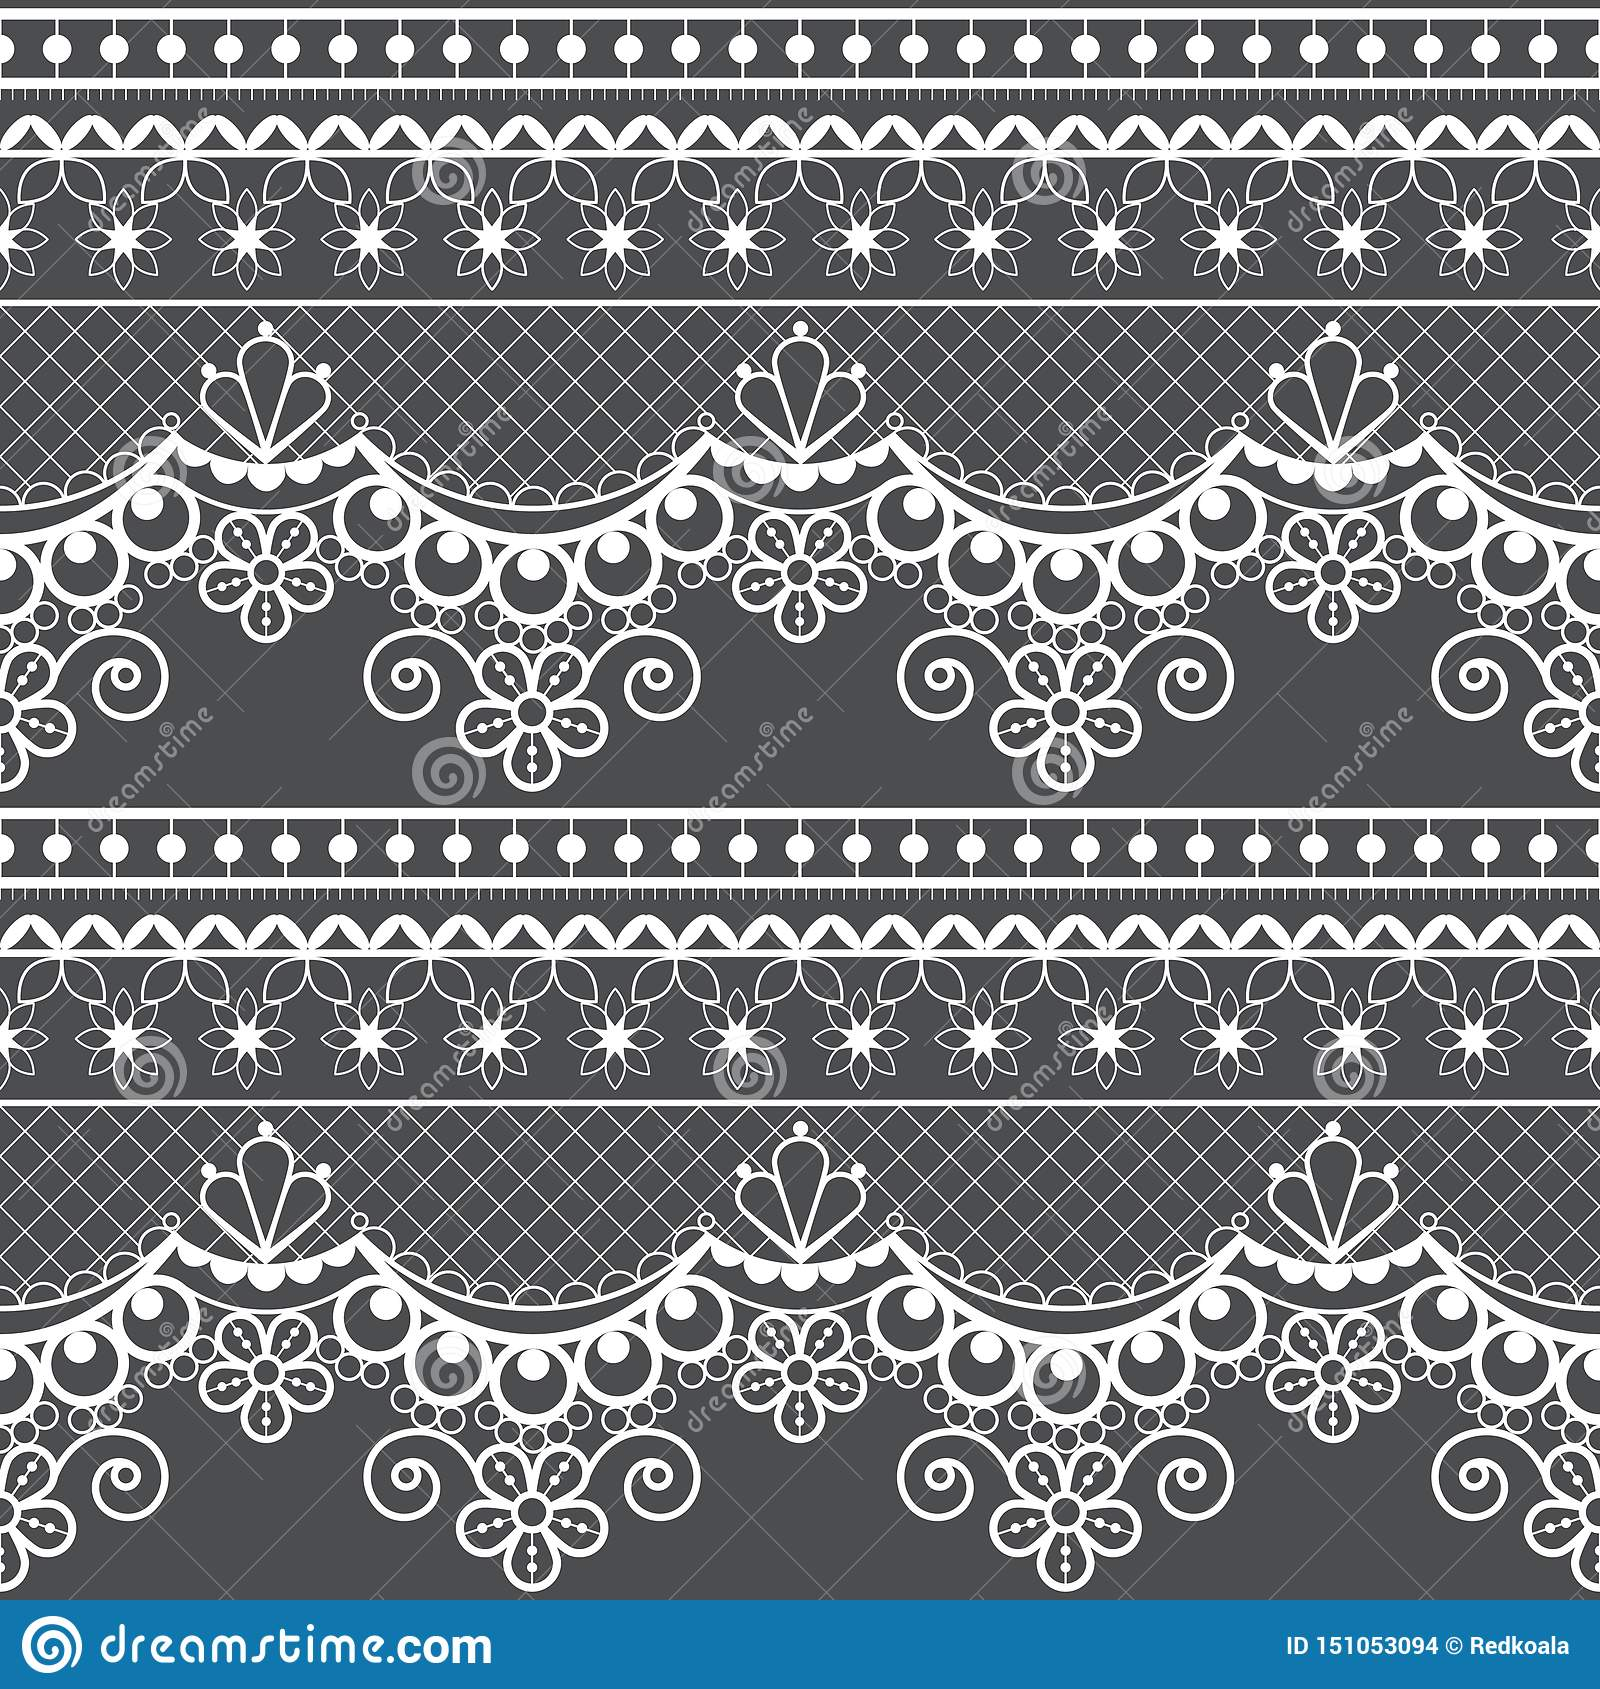 Wedding lace French or English seamless pattern set, white ornamental repetitive design with flowers - textile design